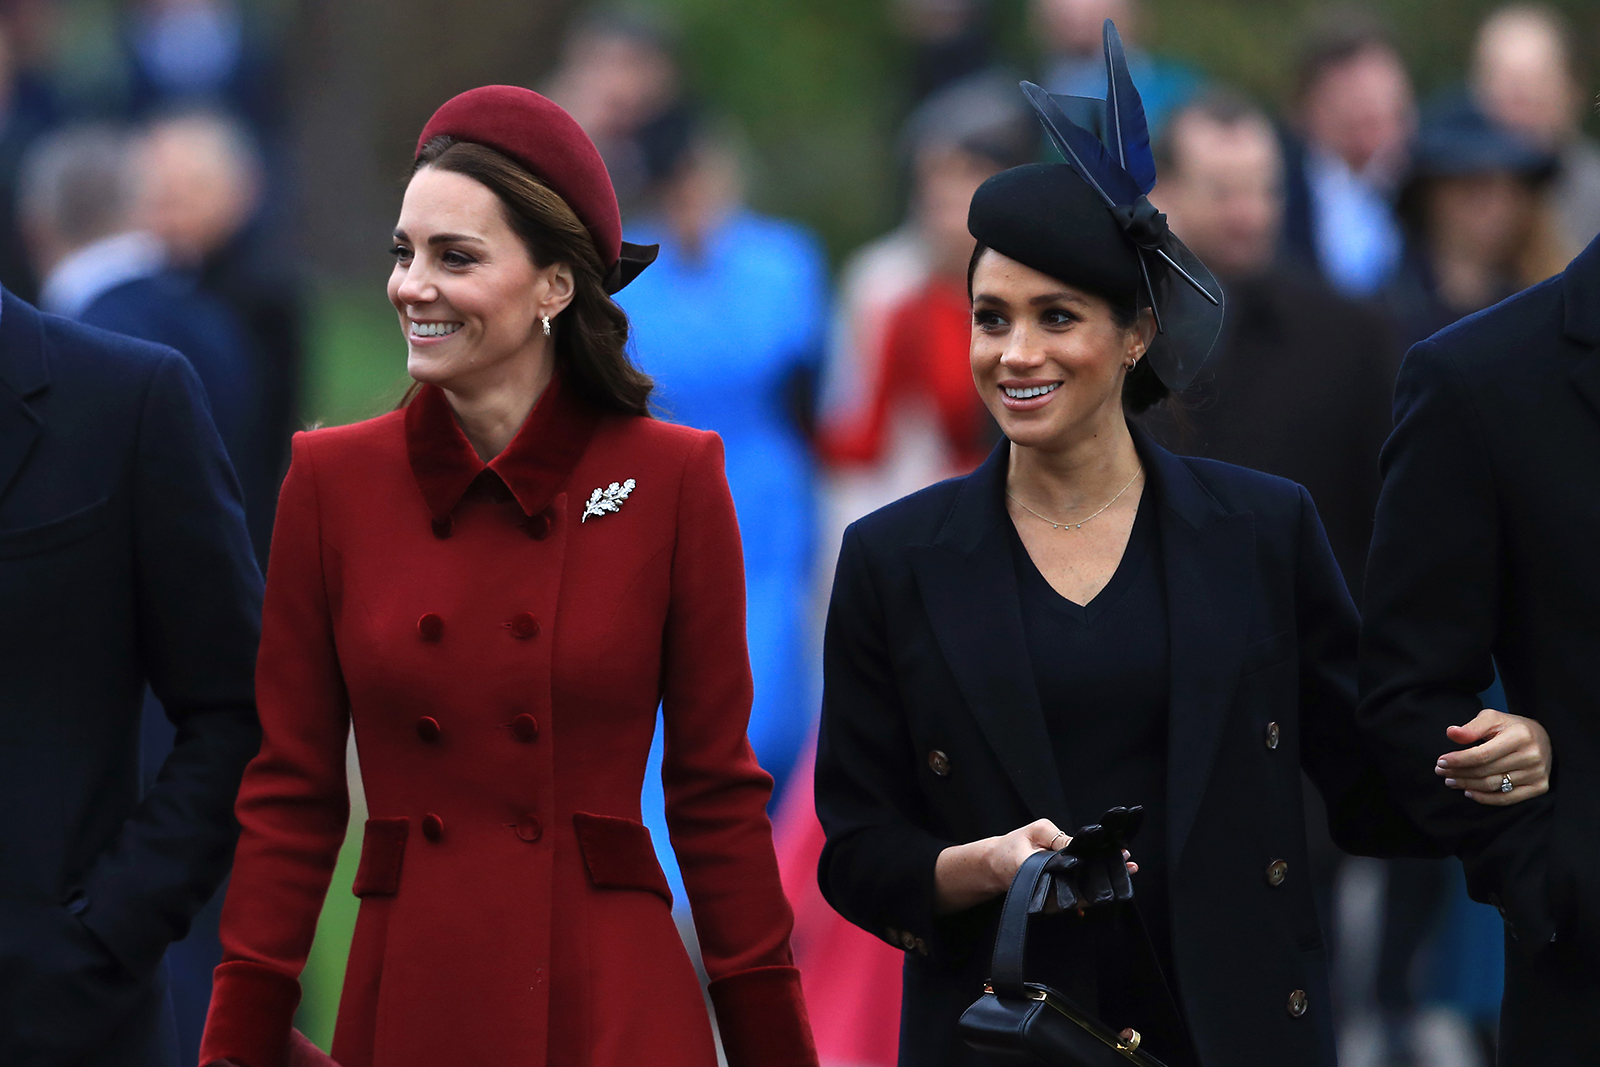 Catherine, Duchess of Cambridge and Meghan, Duchess of Sussex arrive to attend Christmas Day Church service at Church of St Mary Magdalene on the Sandringham estate on December 25, 2018 in King's Lynn, England.